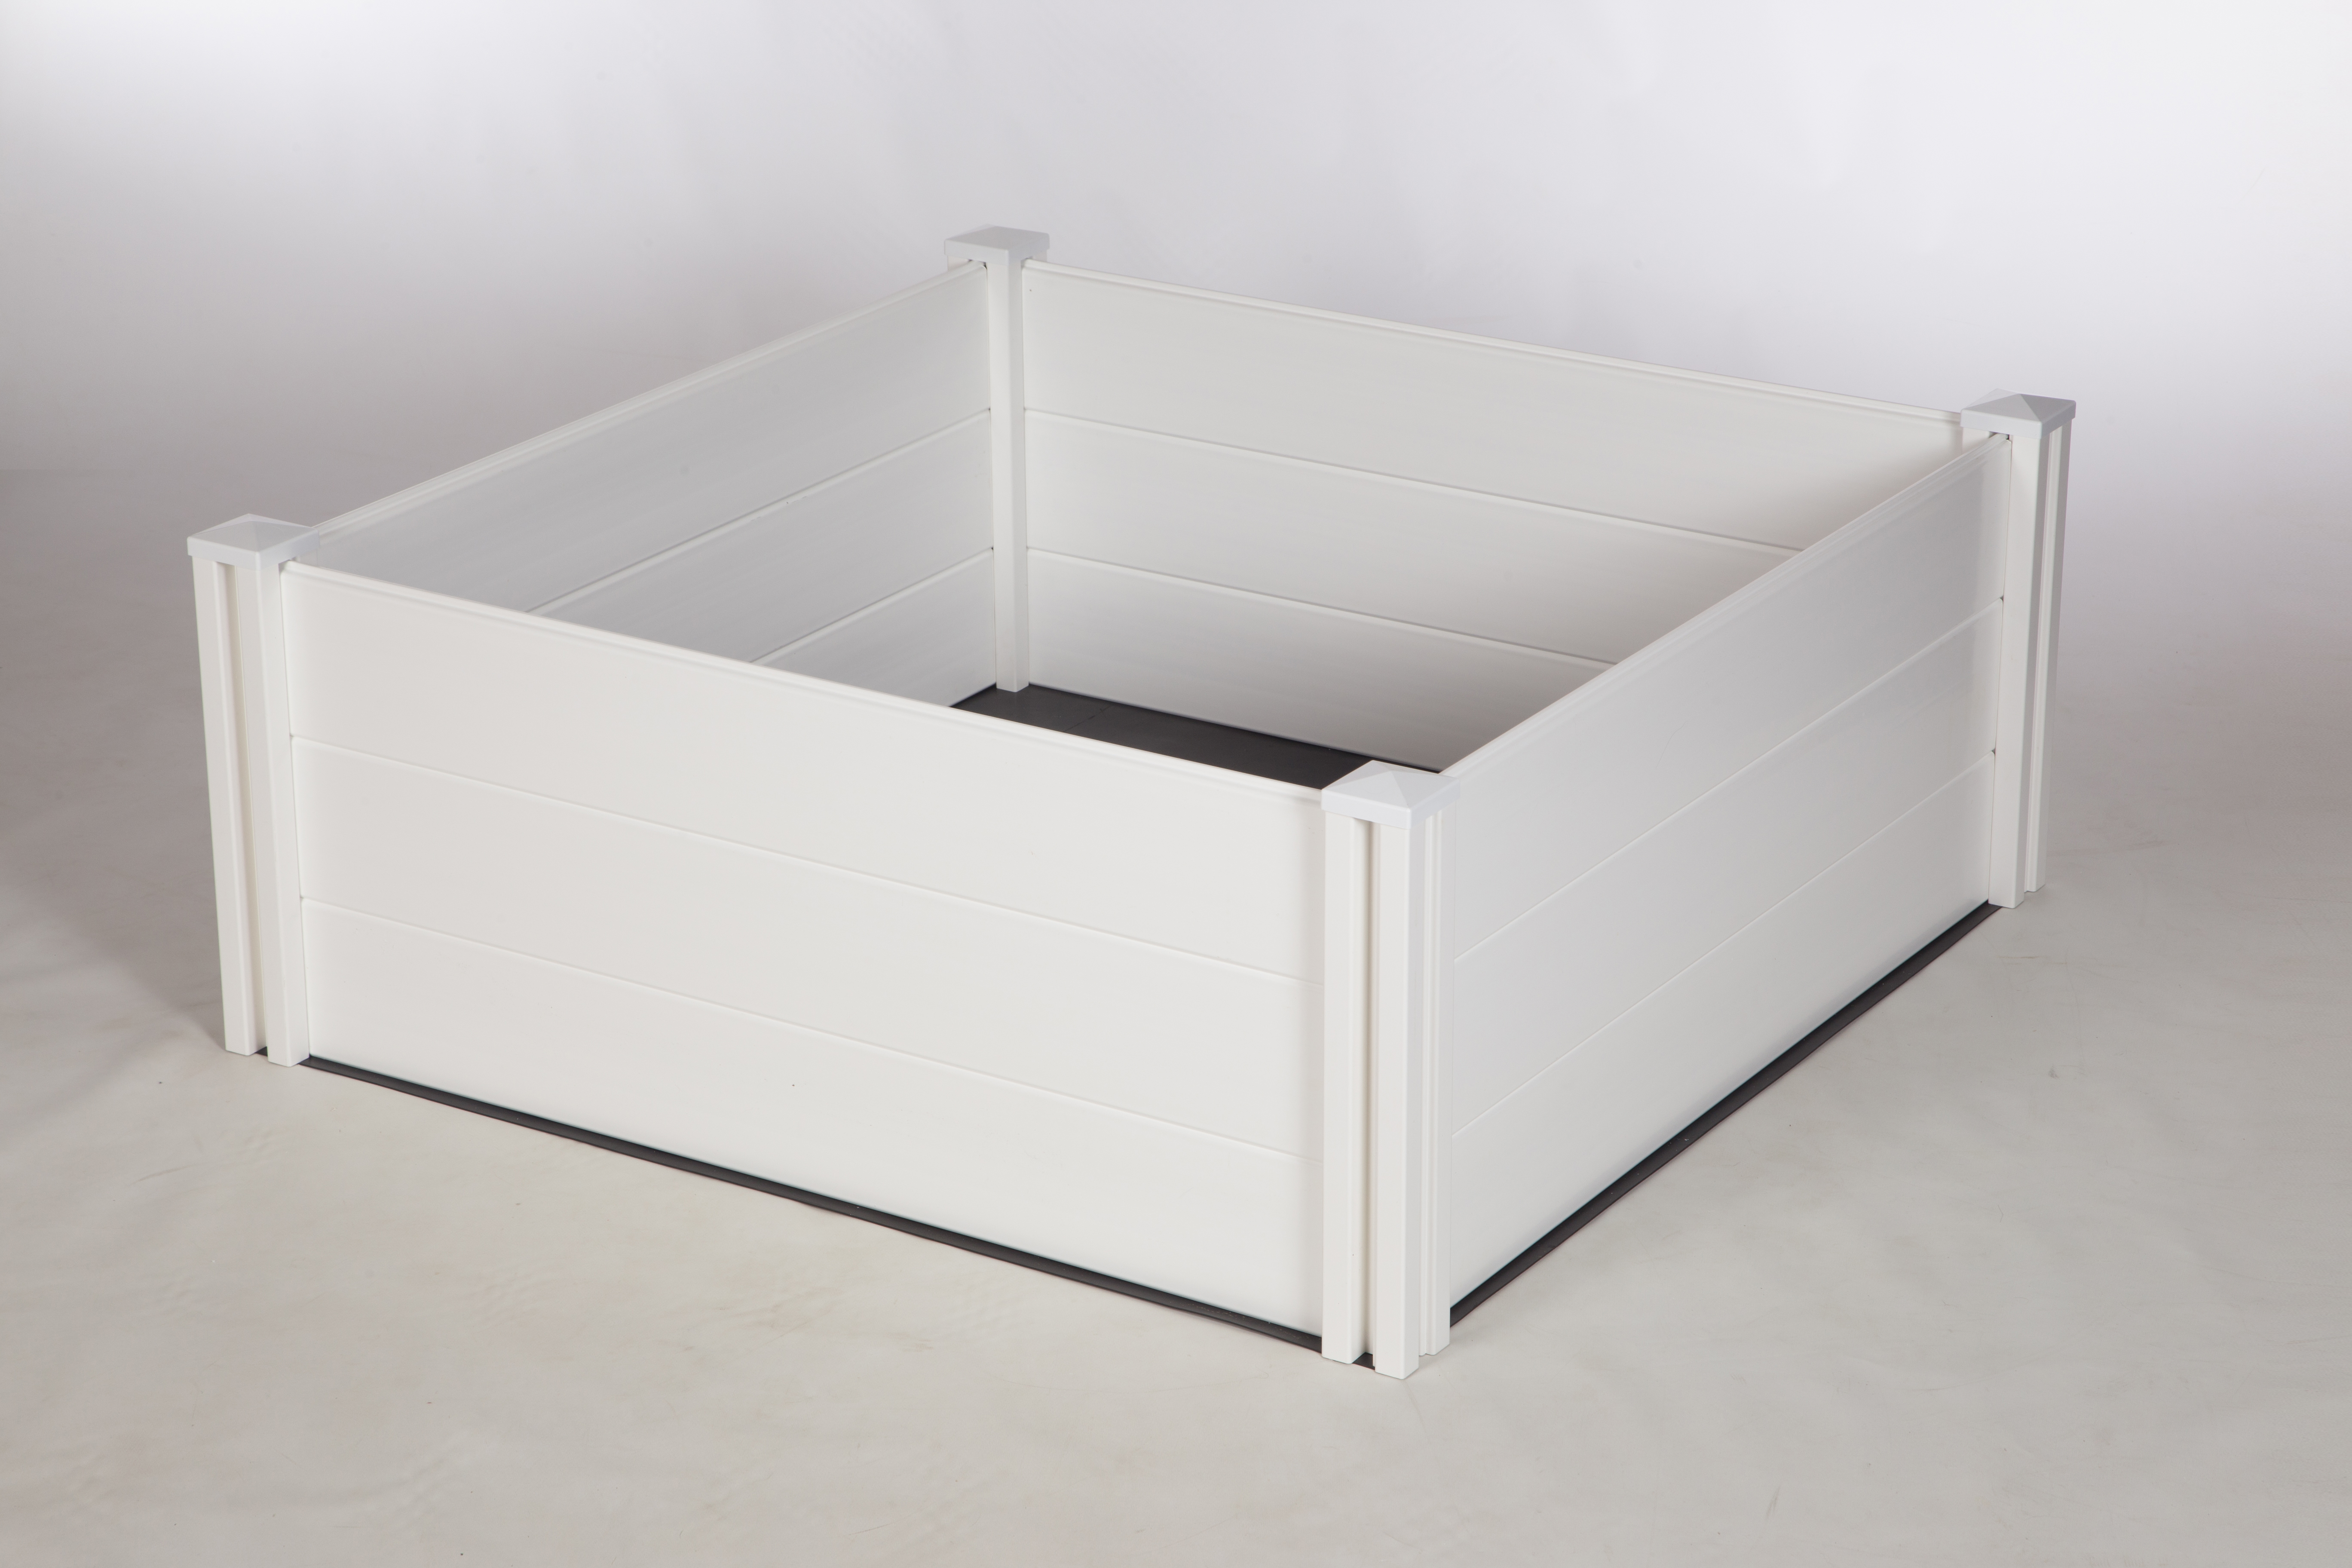 4 Ft X 4 Ft Whelping Box Canine Whelping Box